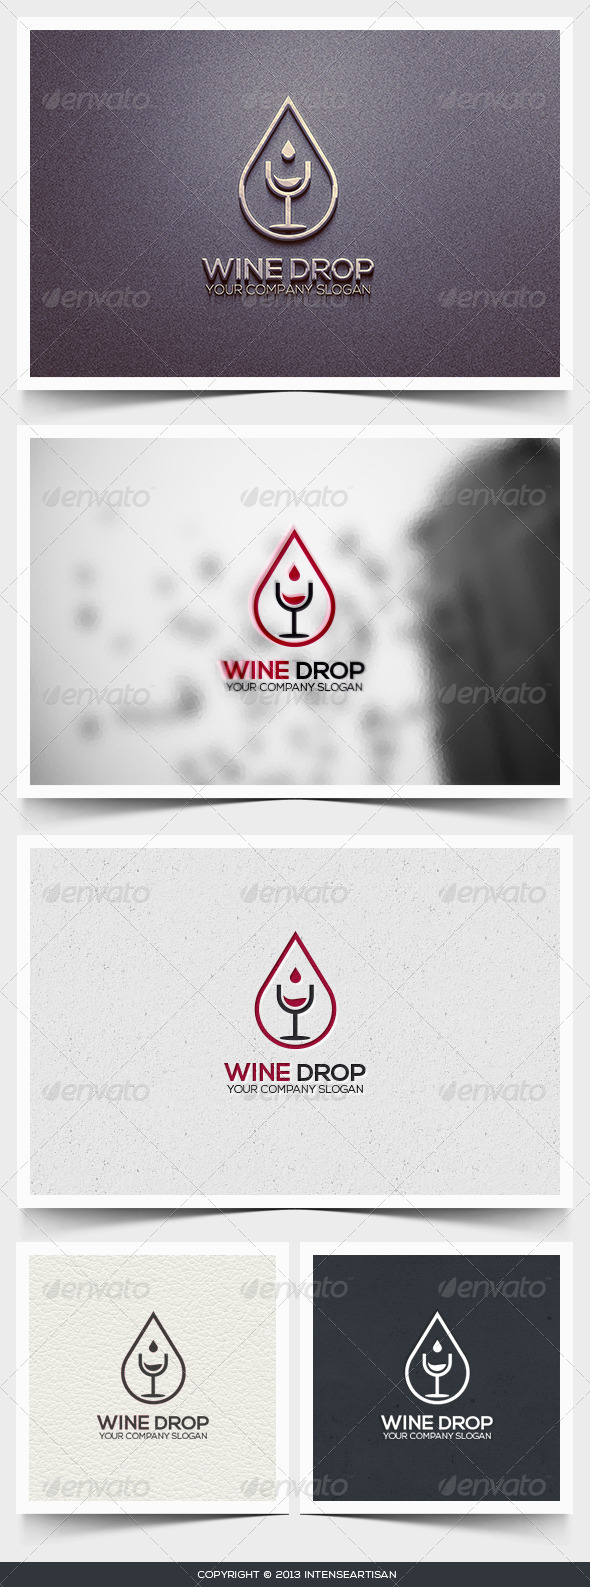 Wine Drop Logo Template - Food Logo Templates